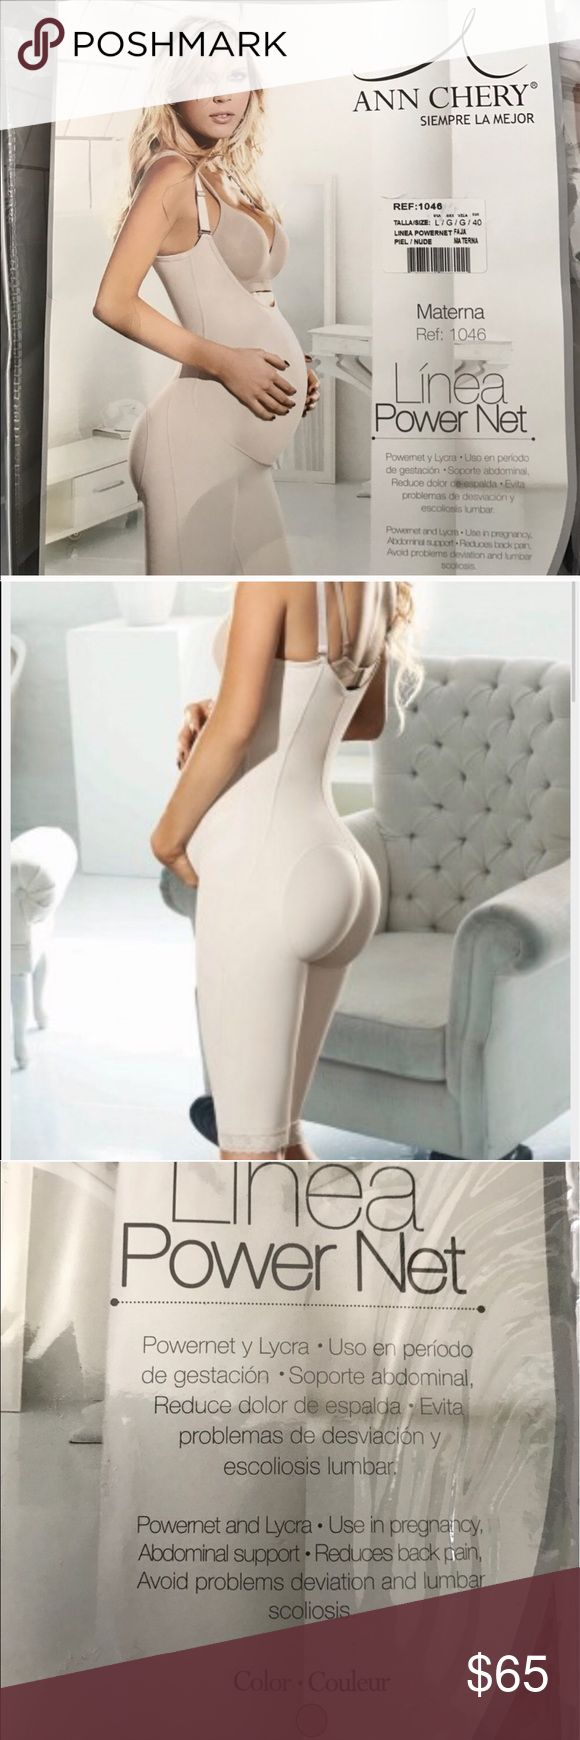 Ann Chery Colombian Maternity garment This garment is used to help support your abdomen during pregnancy. It helps reduce back pain caused by pregnancymanufacturers size chart is posted.                  Prices are firm on ALL Ann Chery garments unless bundle or you're a return Posher.                                                      ✳️20% OFF bundles of 2 or more items                                             No Trades. ♀️Free Belladonna waist trainer with purchase to use after…